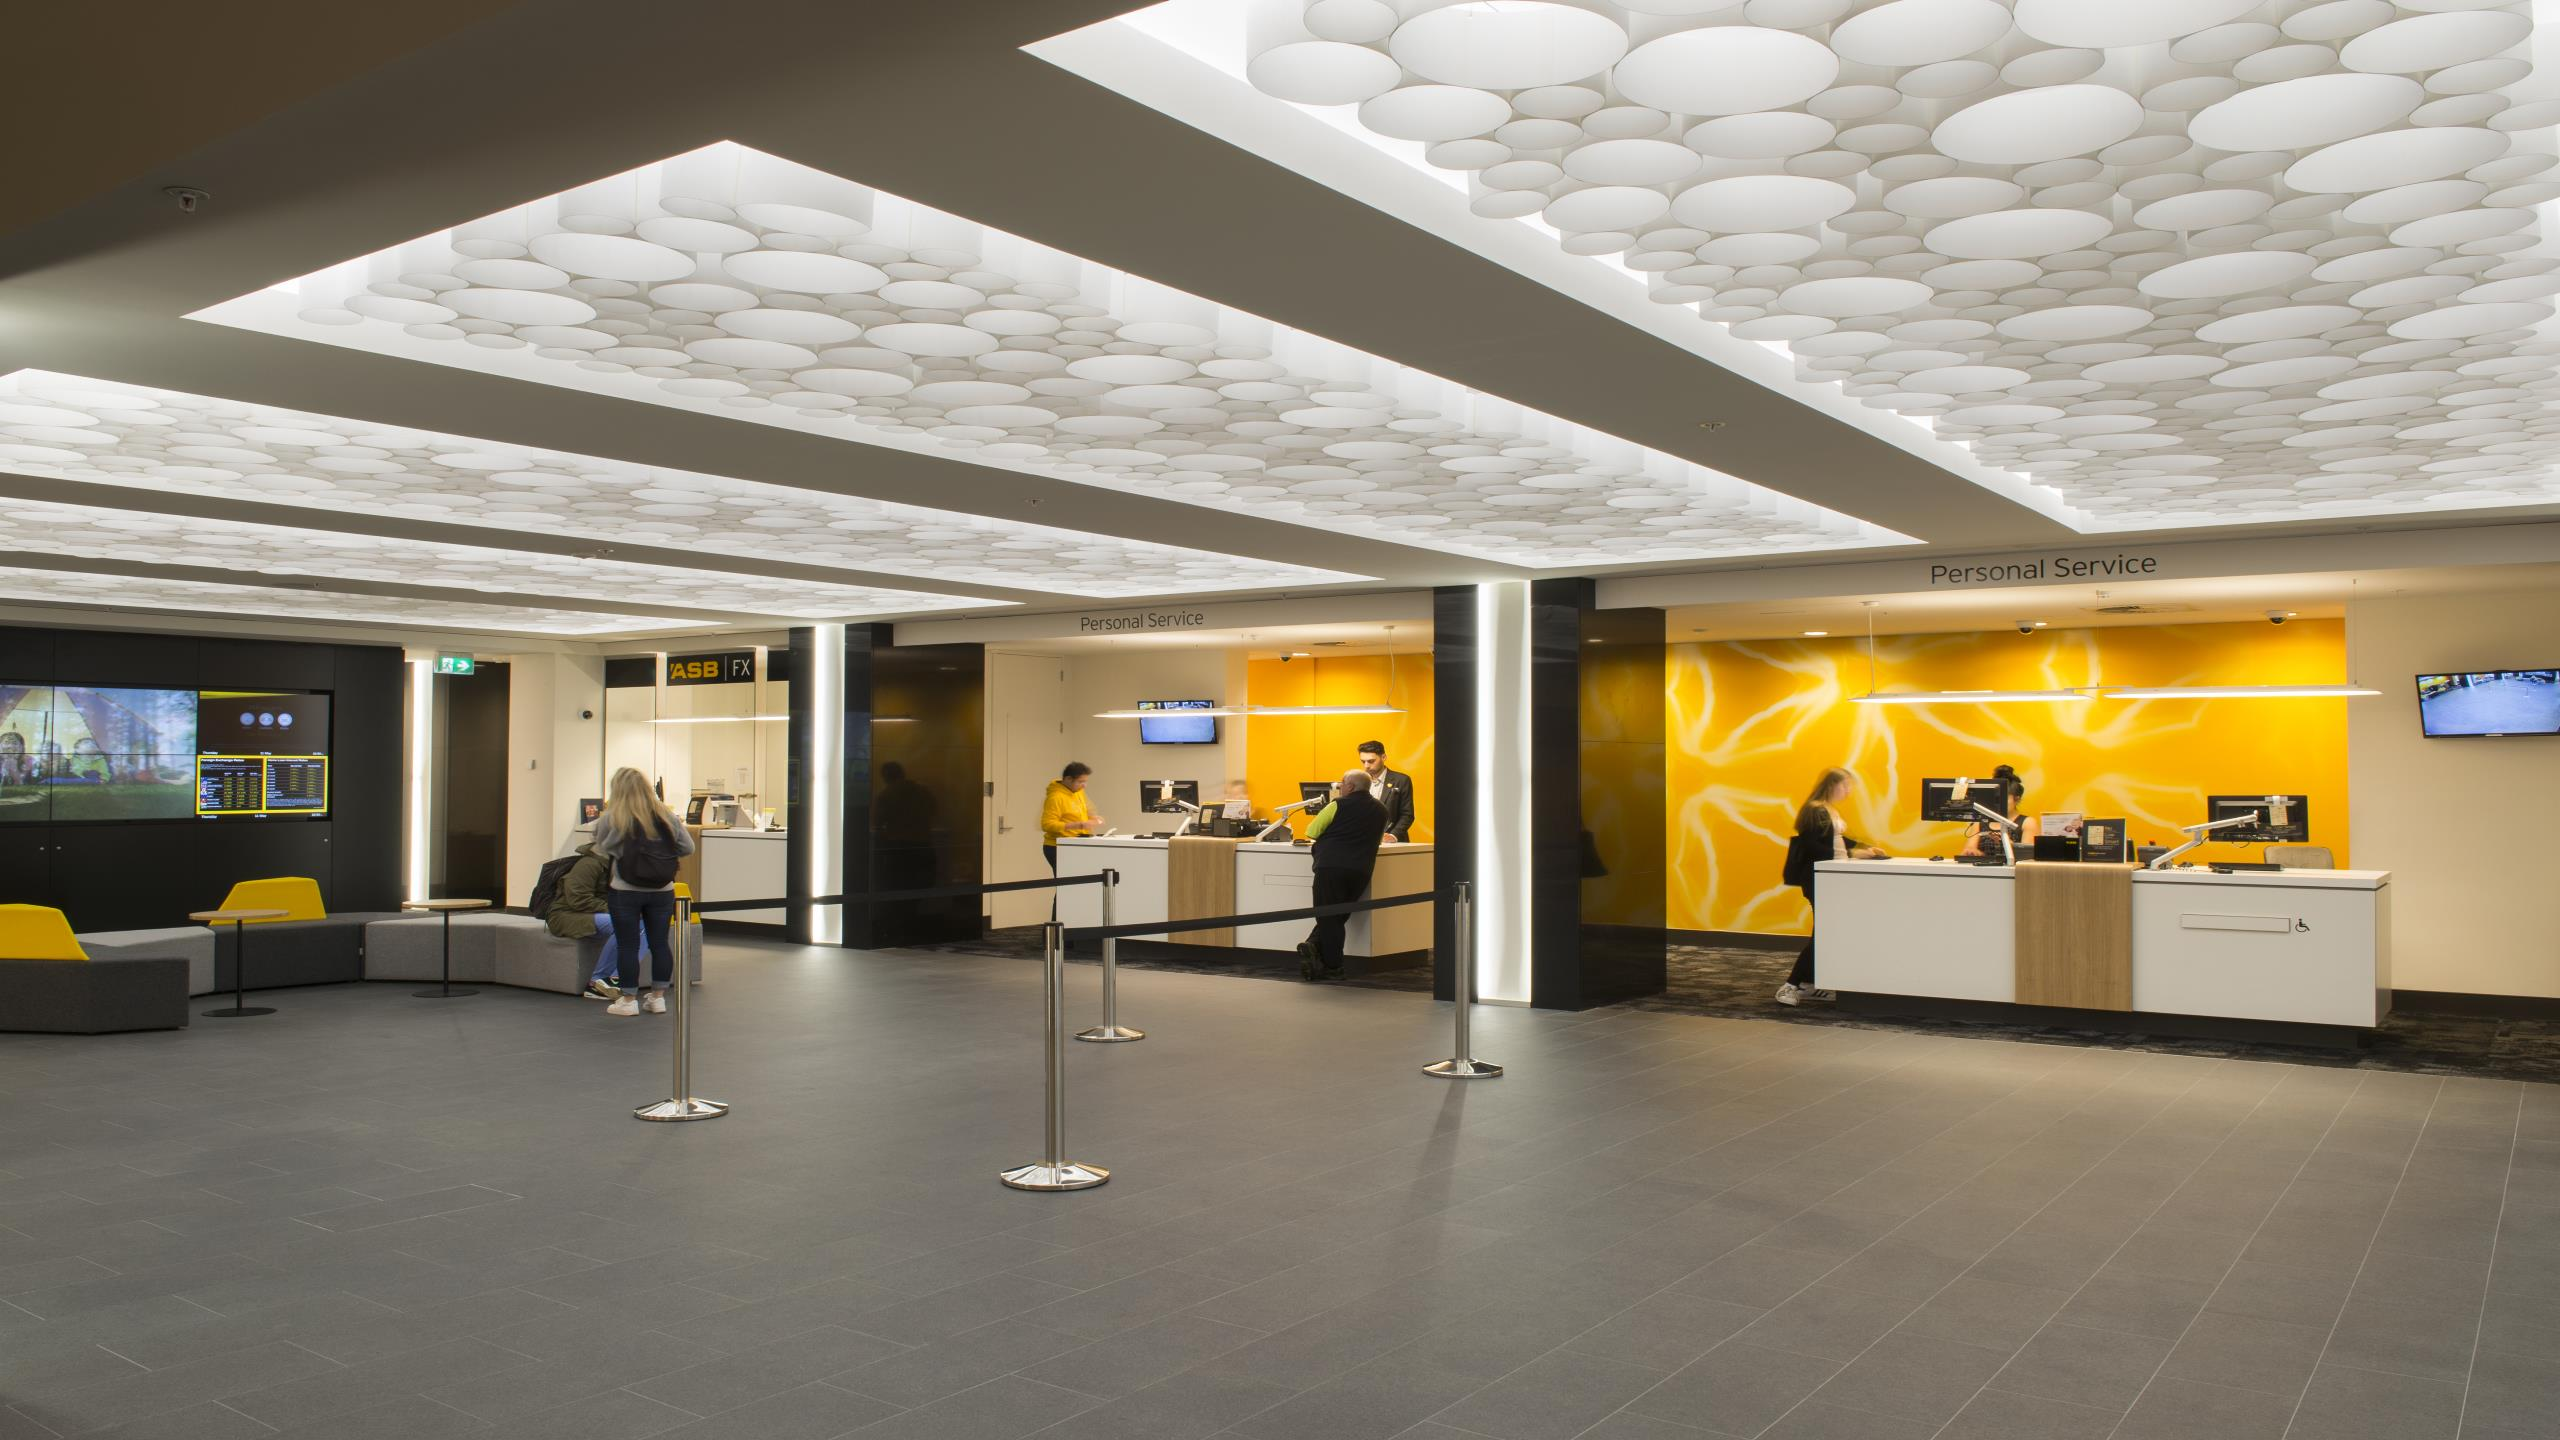 ASB Queen Street Branch - AO-Gami acoustic lantern feature